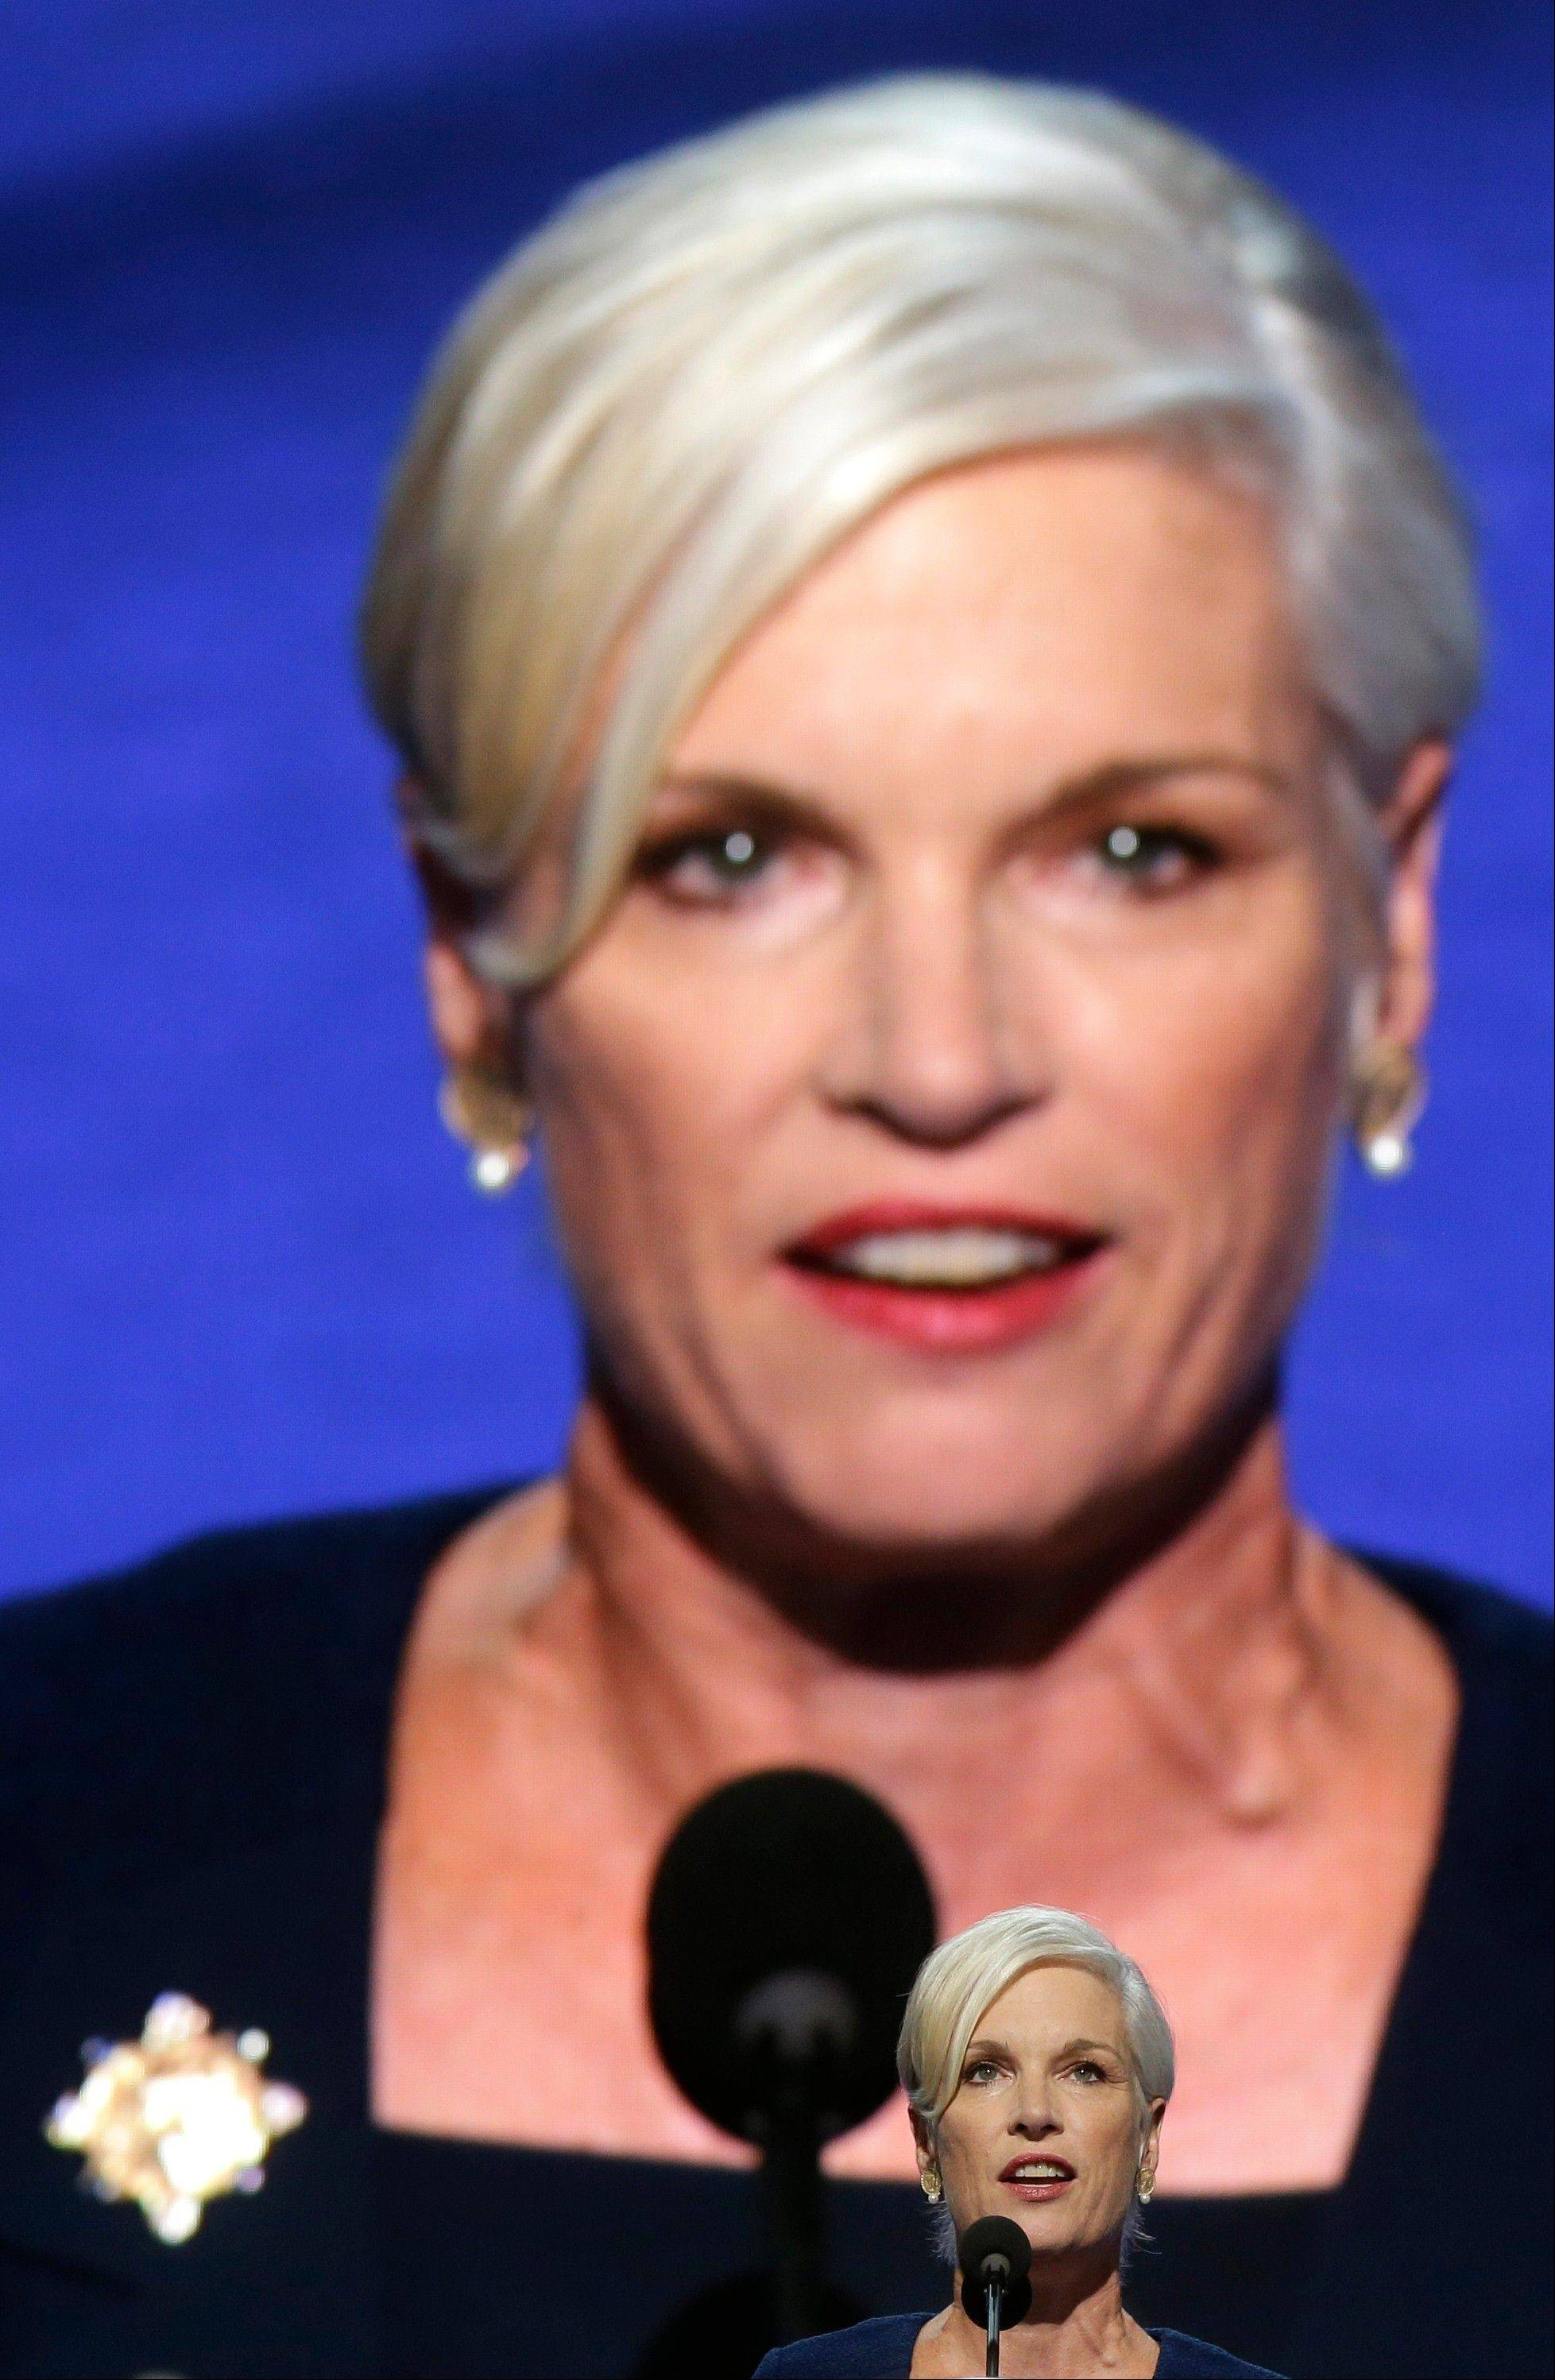 President of Planned Parenthood Action Fund Cecile Richards addresses the Democratic National Convention in Charlotte, N.C., on Wednesday, Sept. 5, 2012.